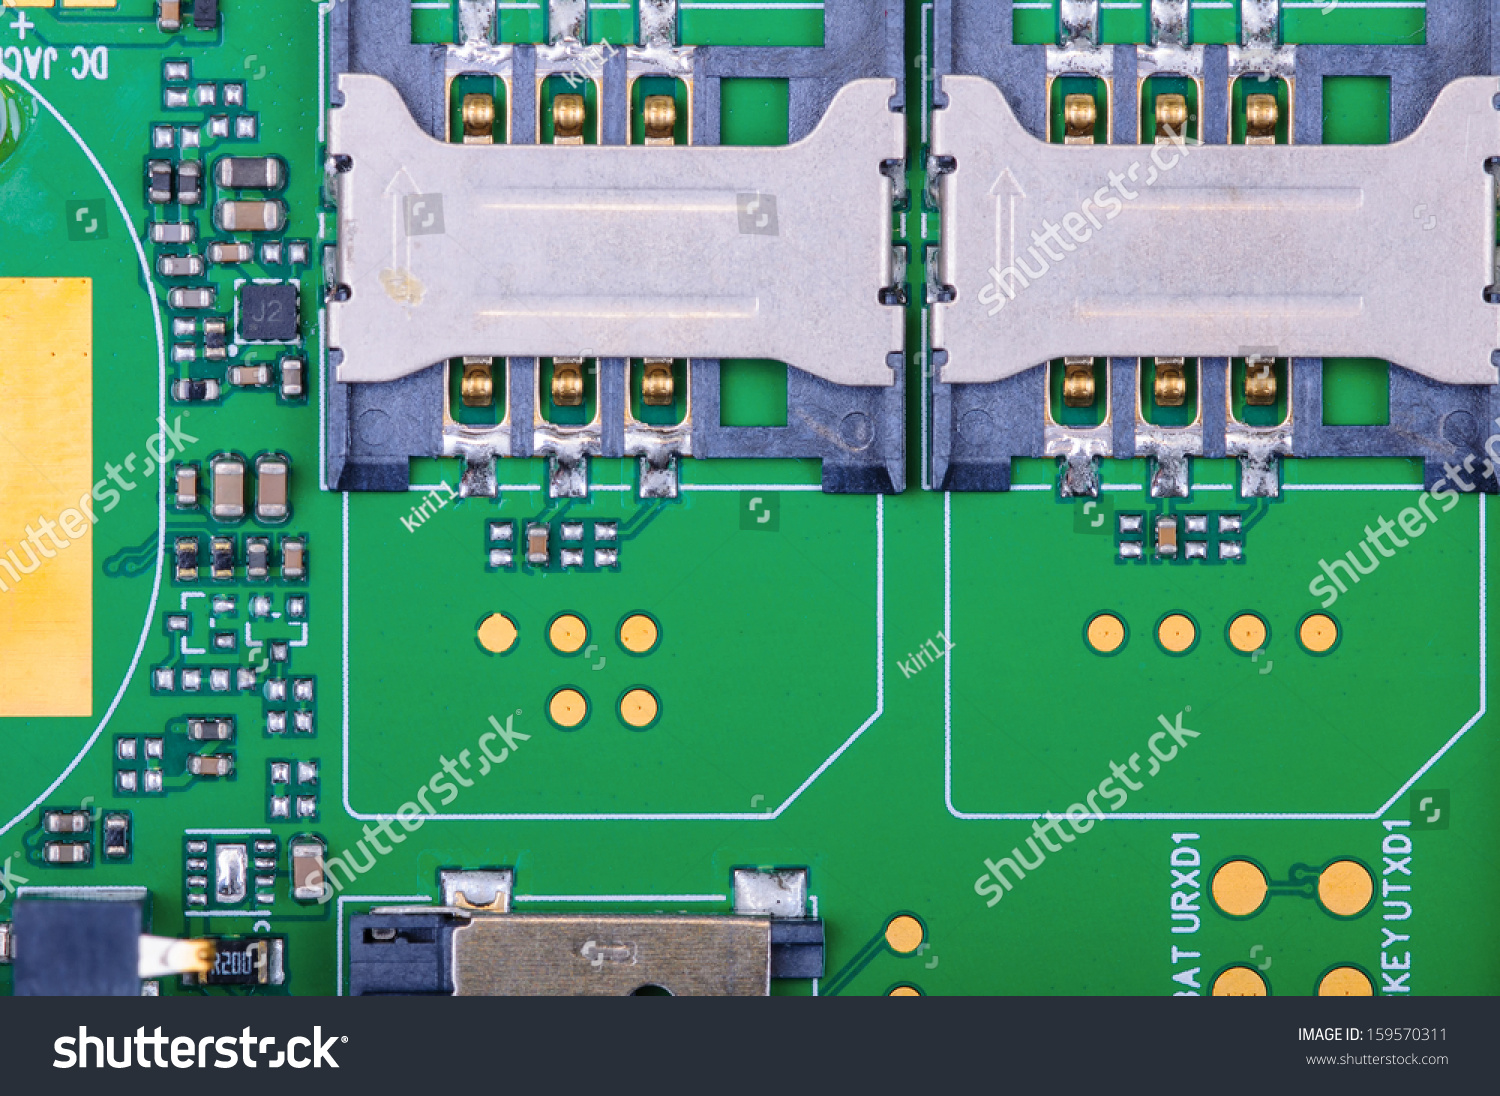 Mobile Phone Circuit Board Dual Sim Stock Photo Edit Now 159570311 Old Electronic Royalty Free Image With Slots Background Close Up